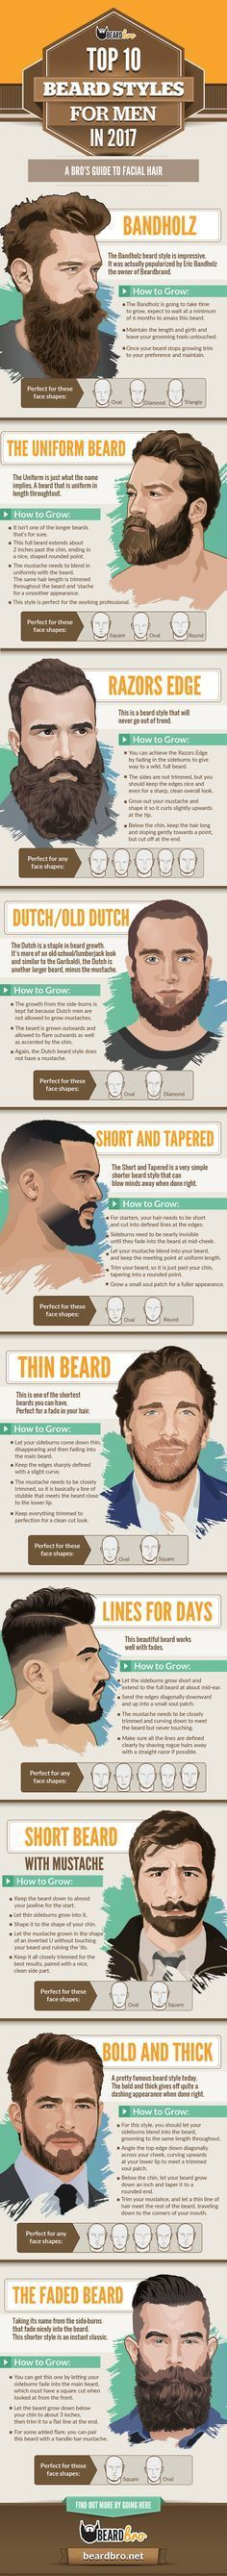 Top 10 Beard Styles for Men in 2017. Infographic - beard grooming guide to facial hair ~ http://ever-unfolding.net/best-beard-trimmer-reviews/